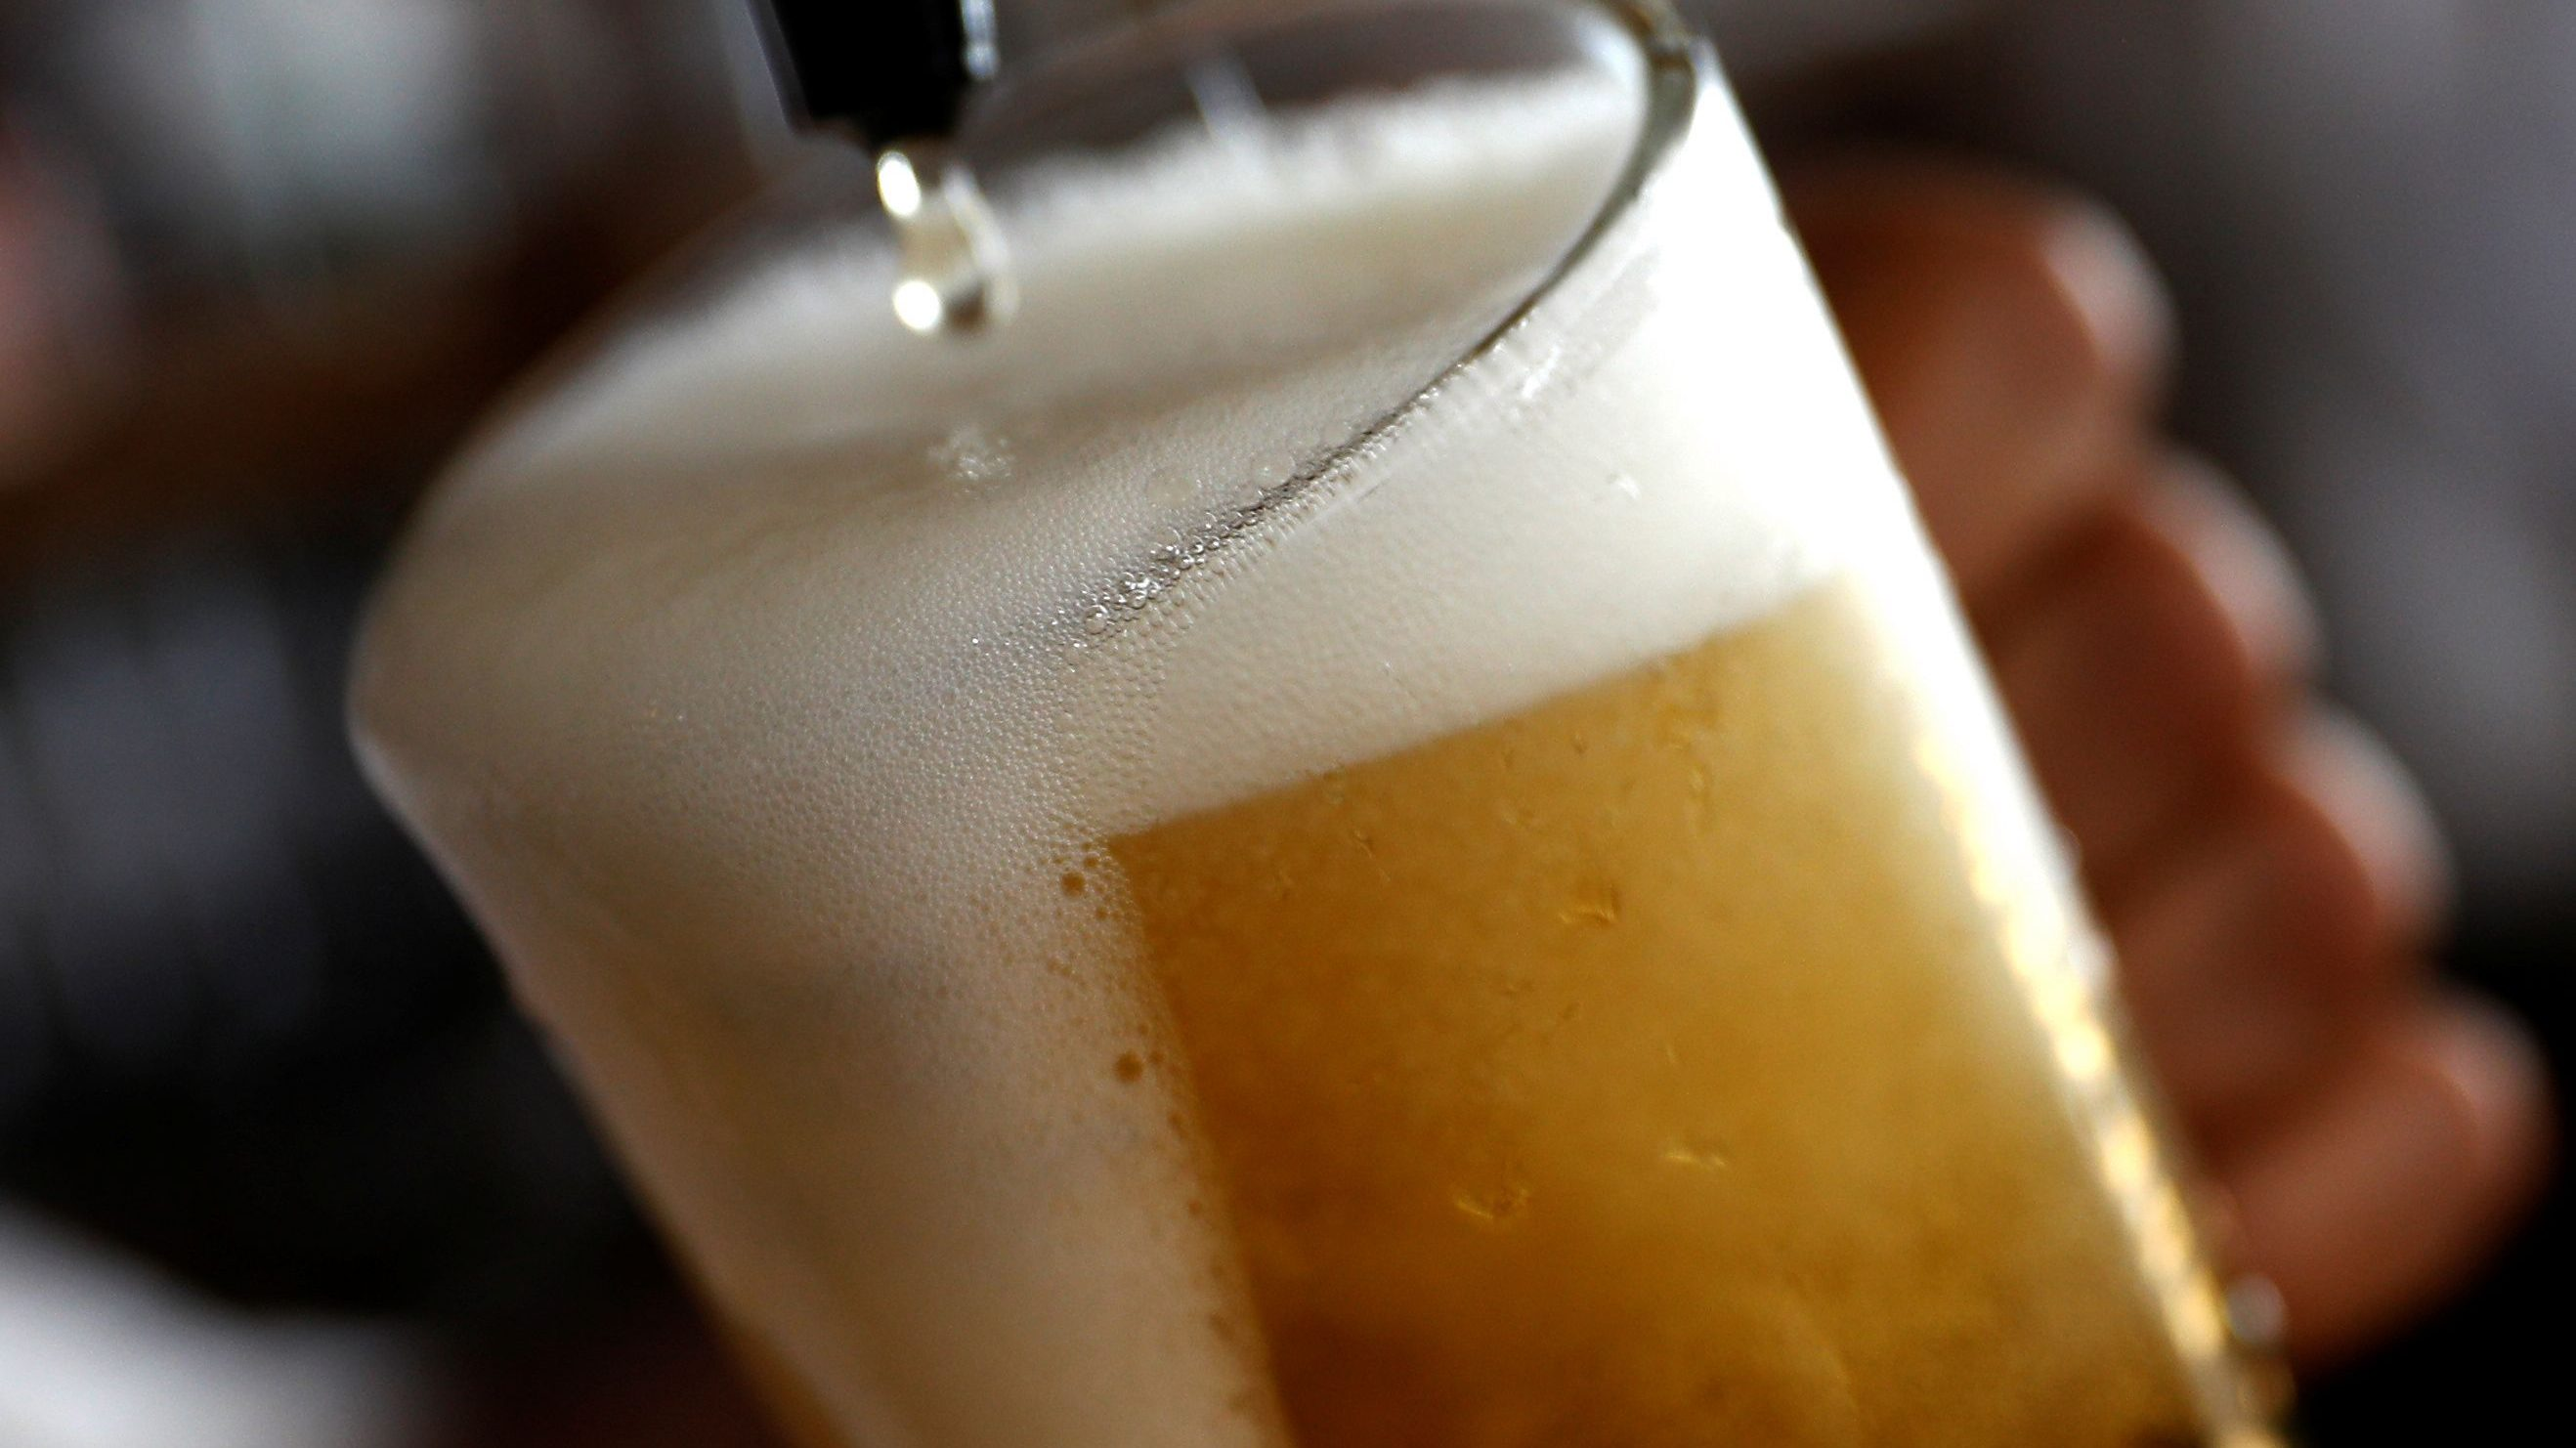 A pint of beer is poured into a glass